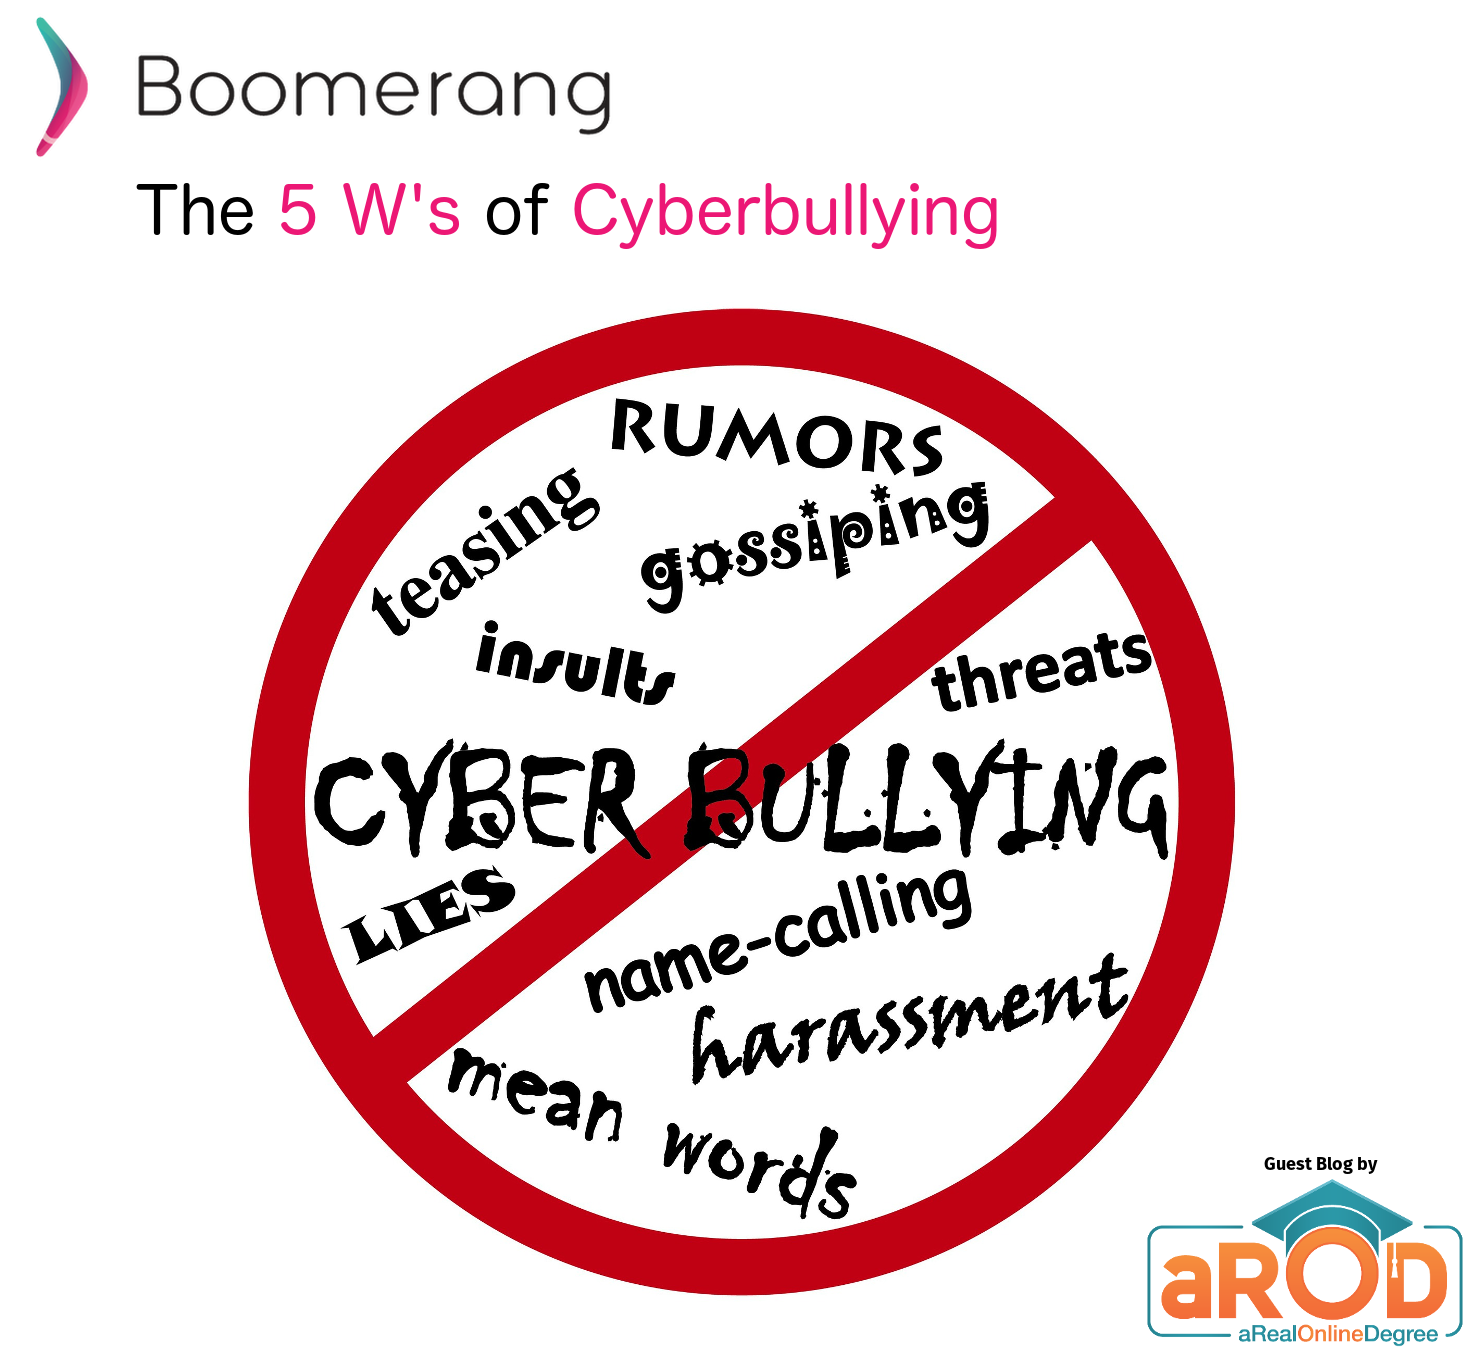 Cyberbullying pictures